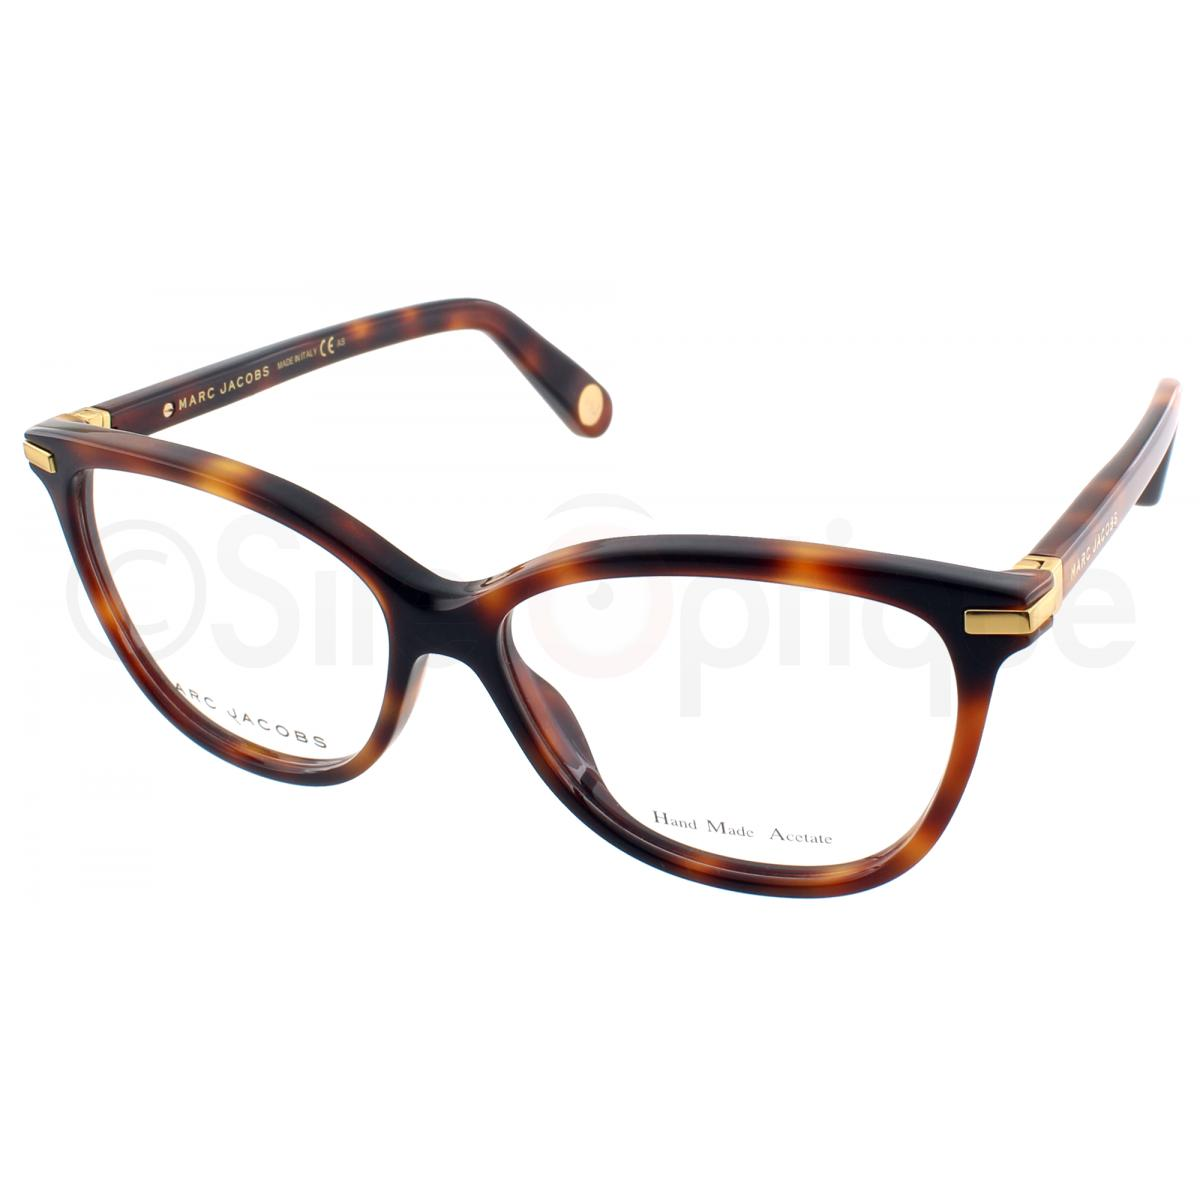 MARC JACOBS - MJ 508 05L – Site optique d562f1f9e9aa